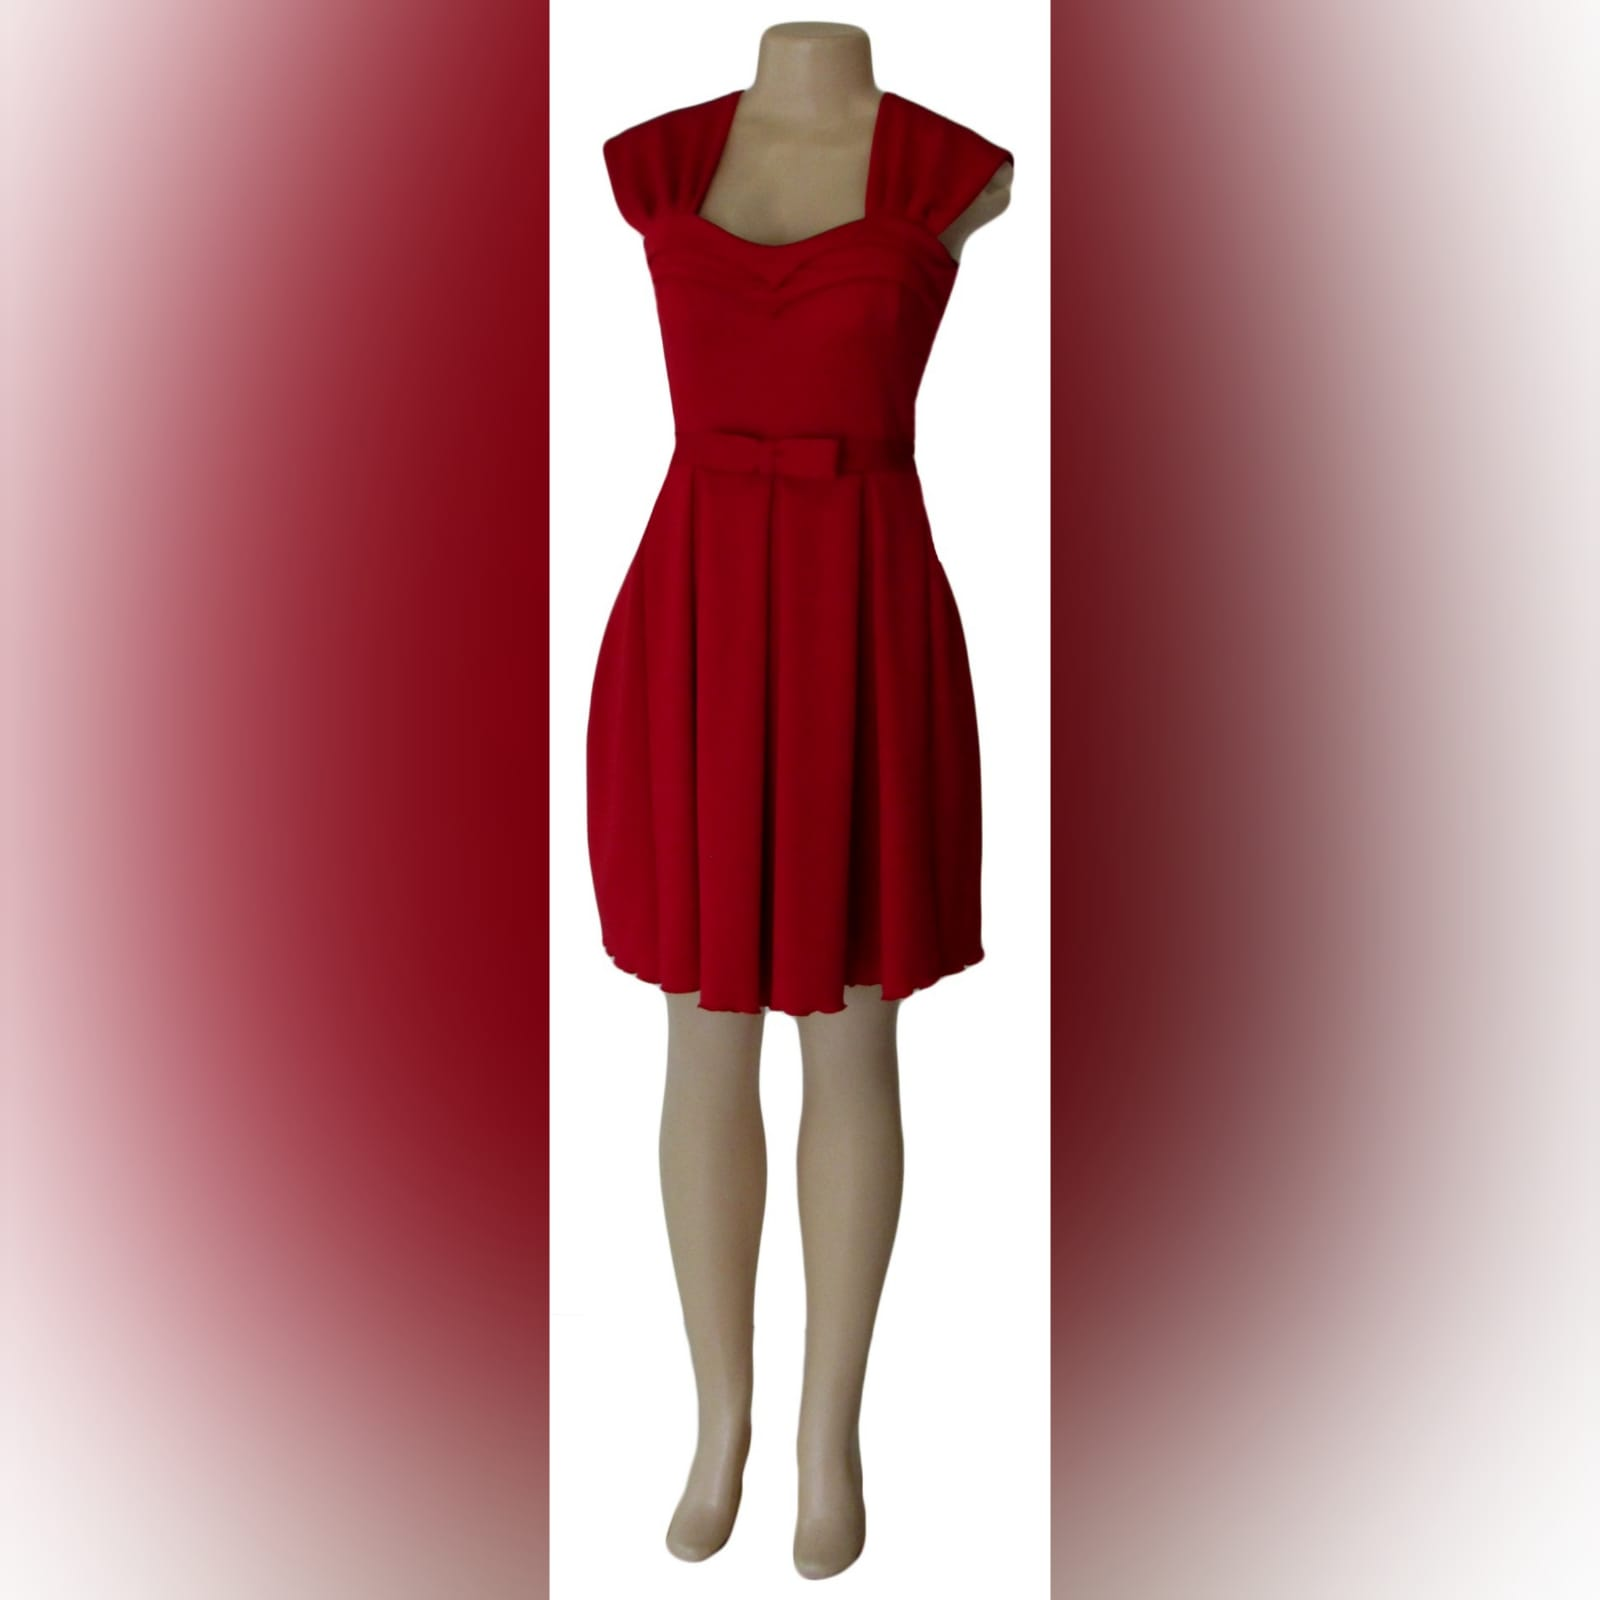 Short red pleated evening dress 1 short red pleated evening dress with a pleated sweetheart neckline and a detachable belt with bow detail